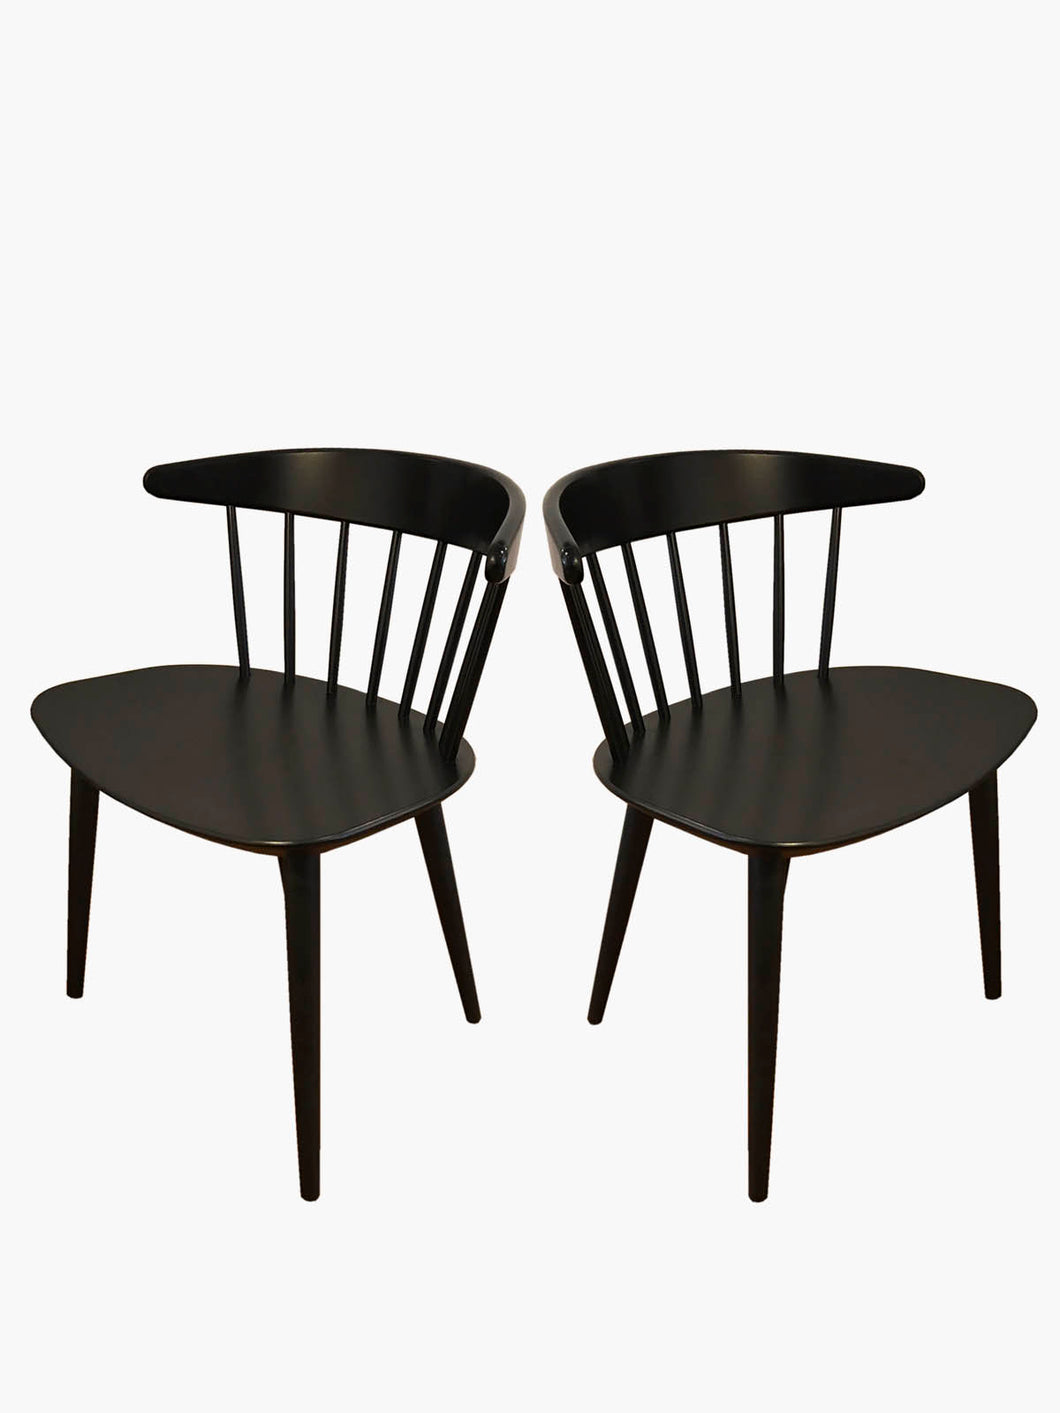 Pair of Black #J104 Chairs